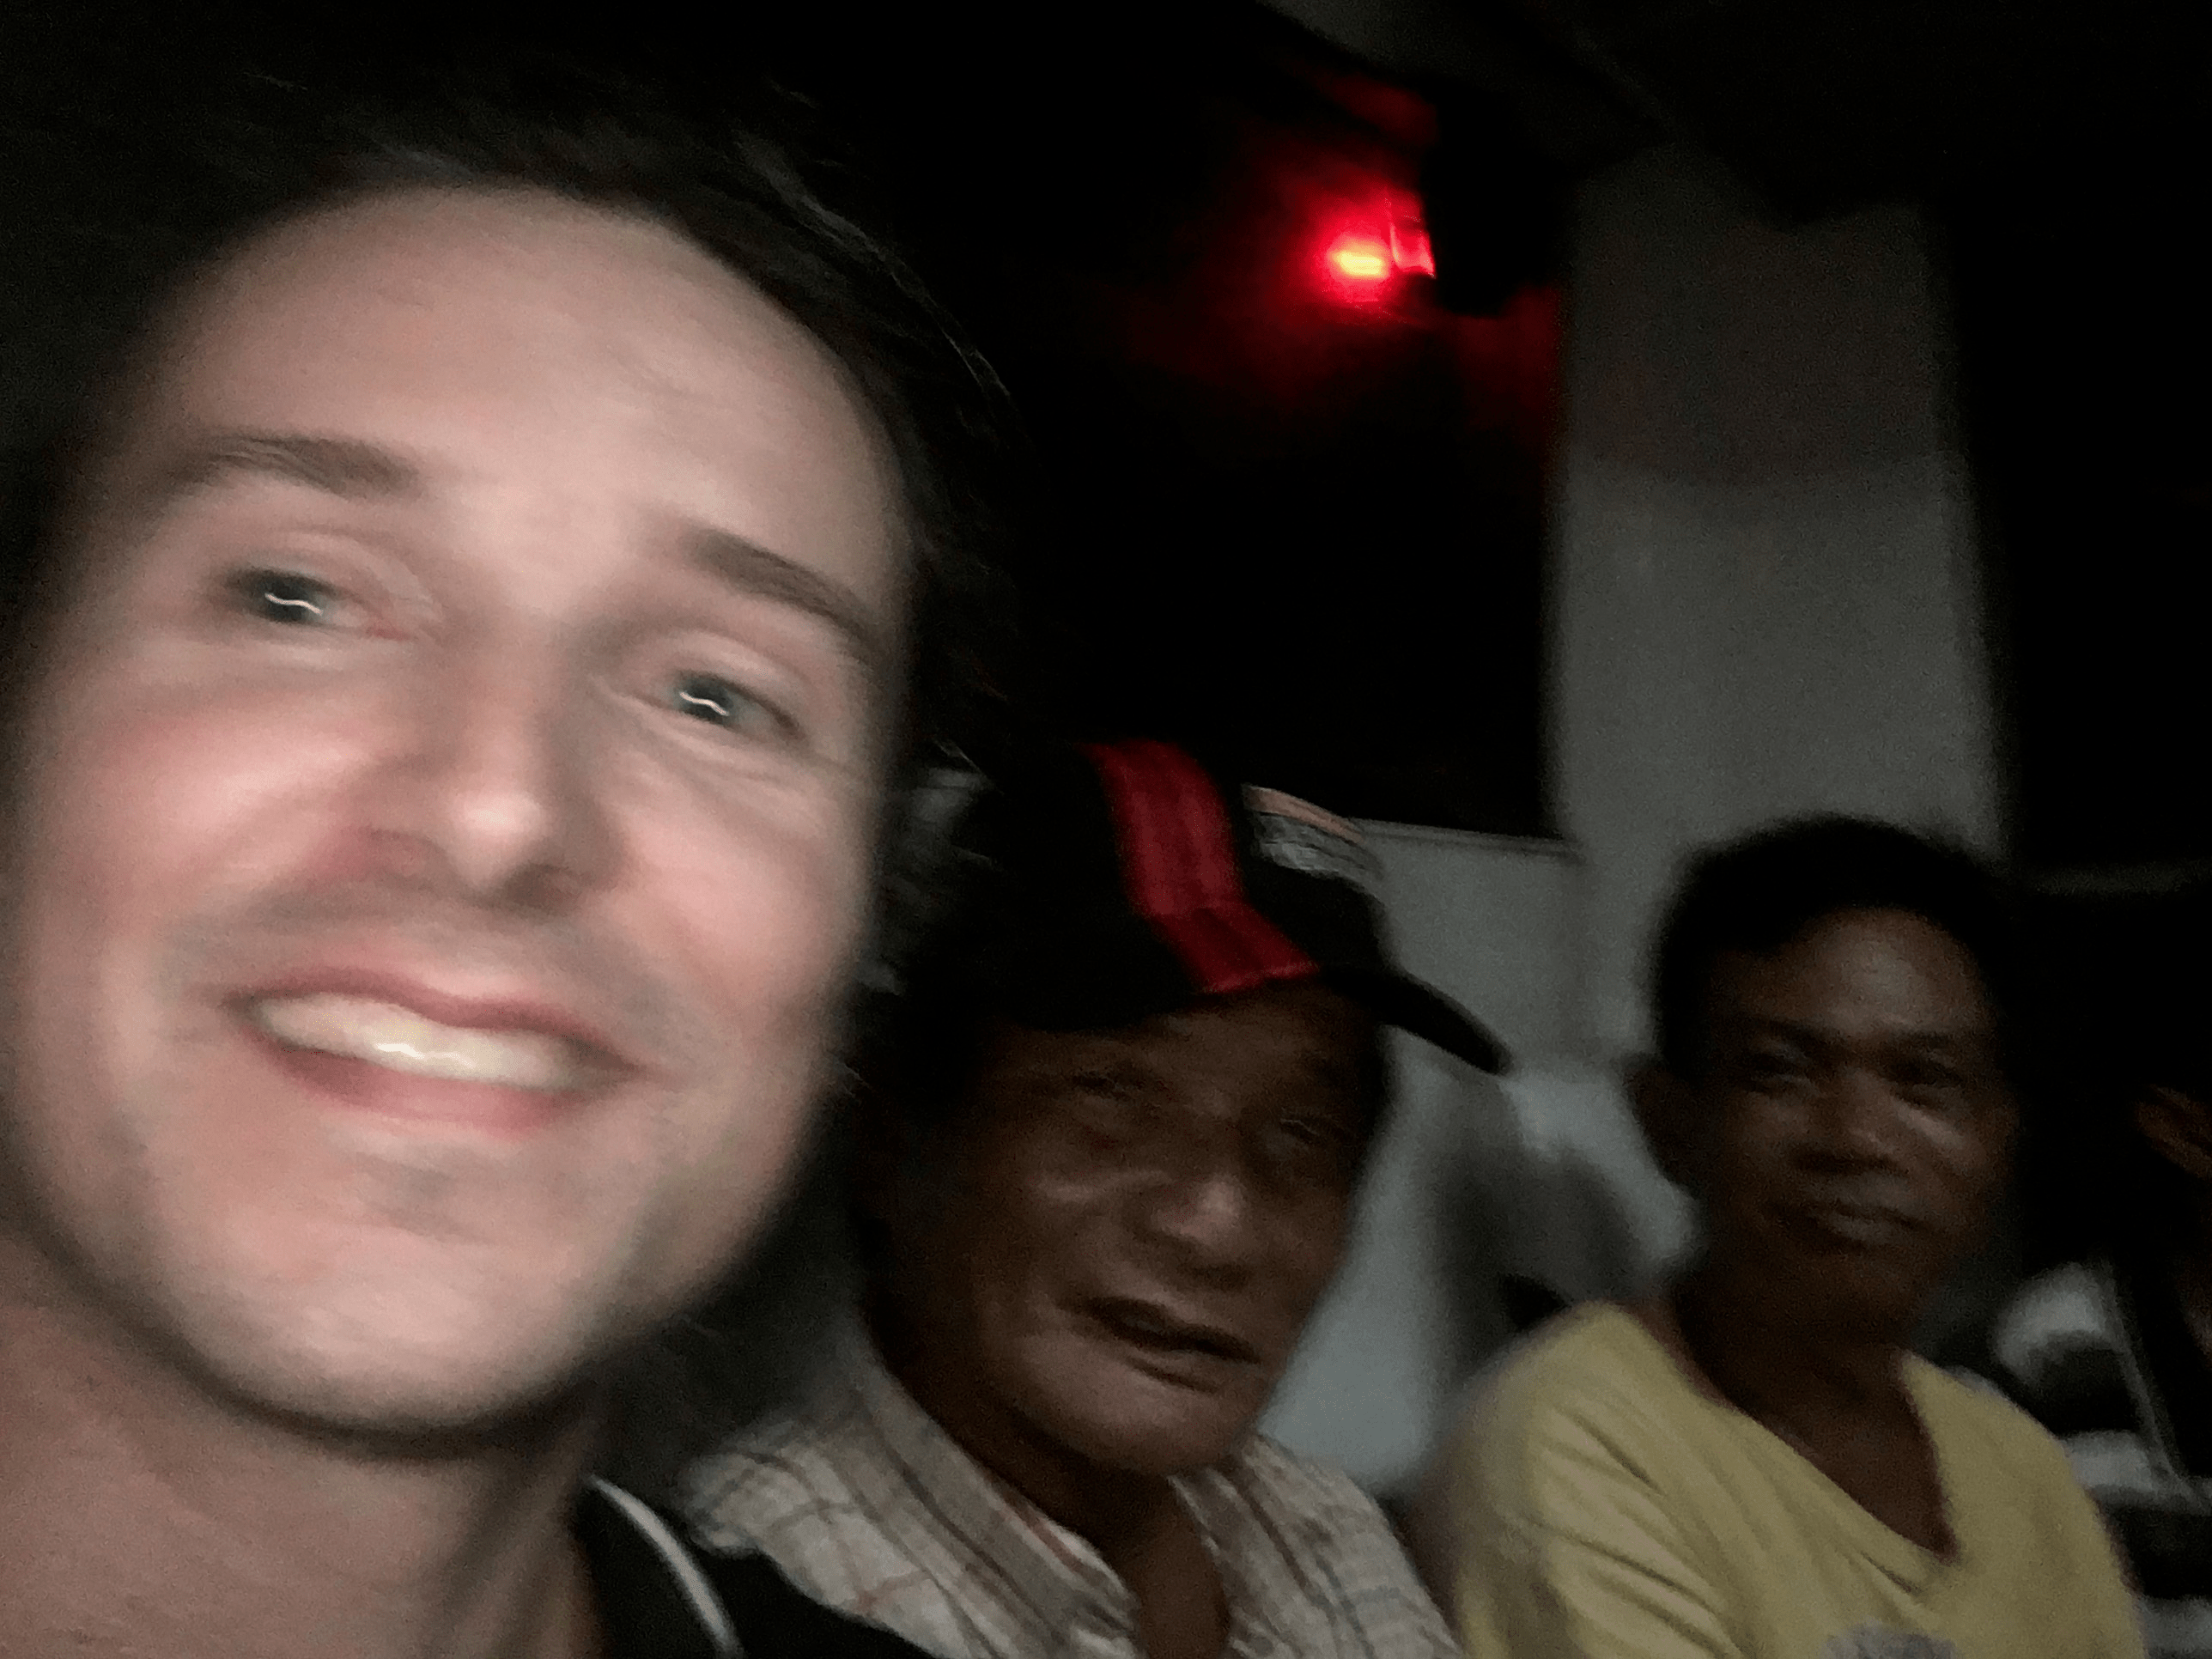 lenny through paradise taking a selfie with filipino men in the bus in the philippines pangasinan